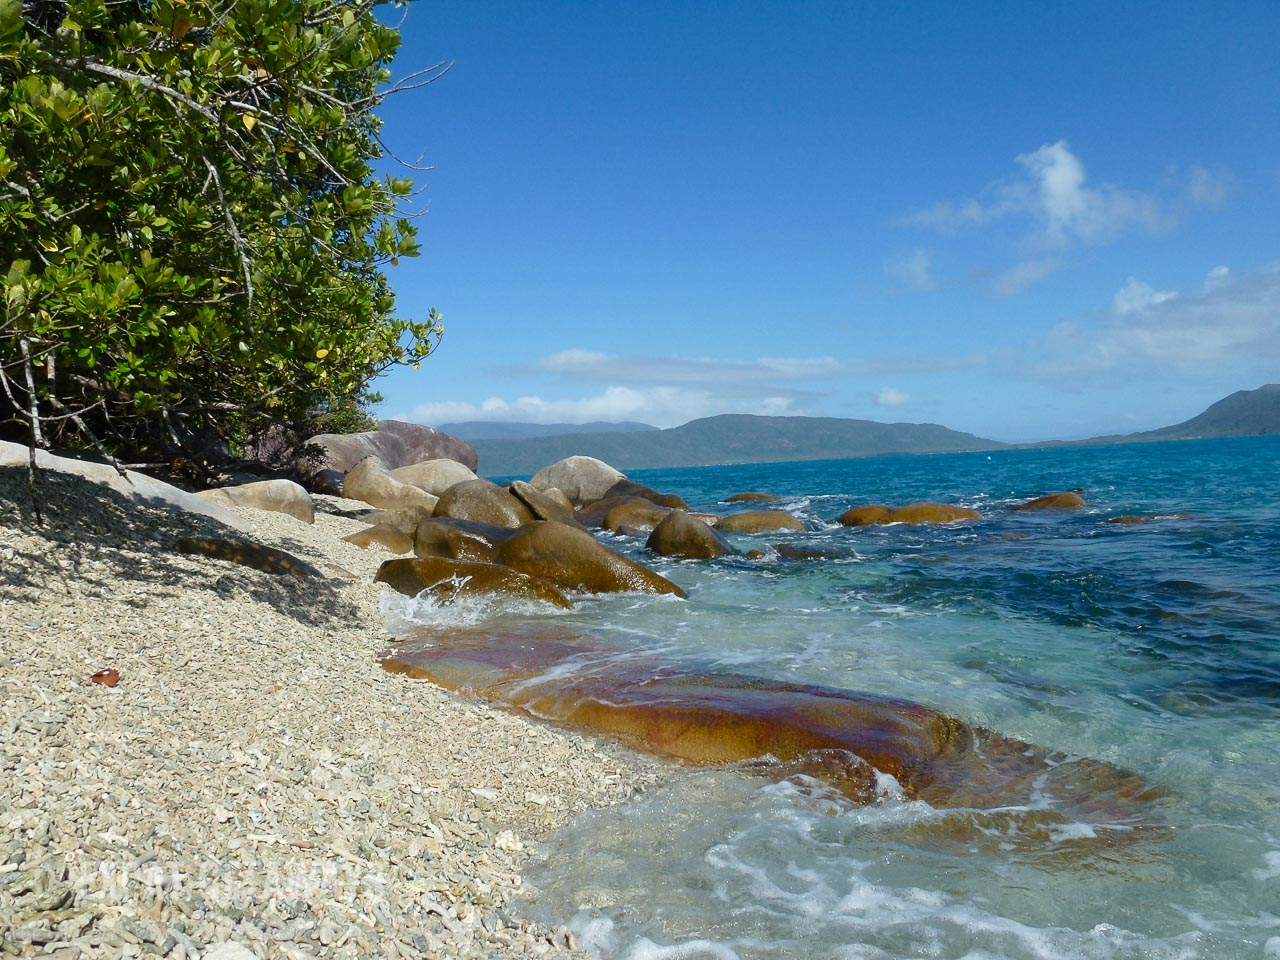 Just 45 minutes from Cairns you find the crystal clear waters of Fitzroy Island. The coral rubble beaches lead you to perfect snorkelling right from the beach.